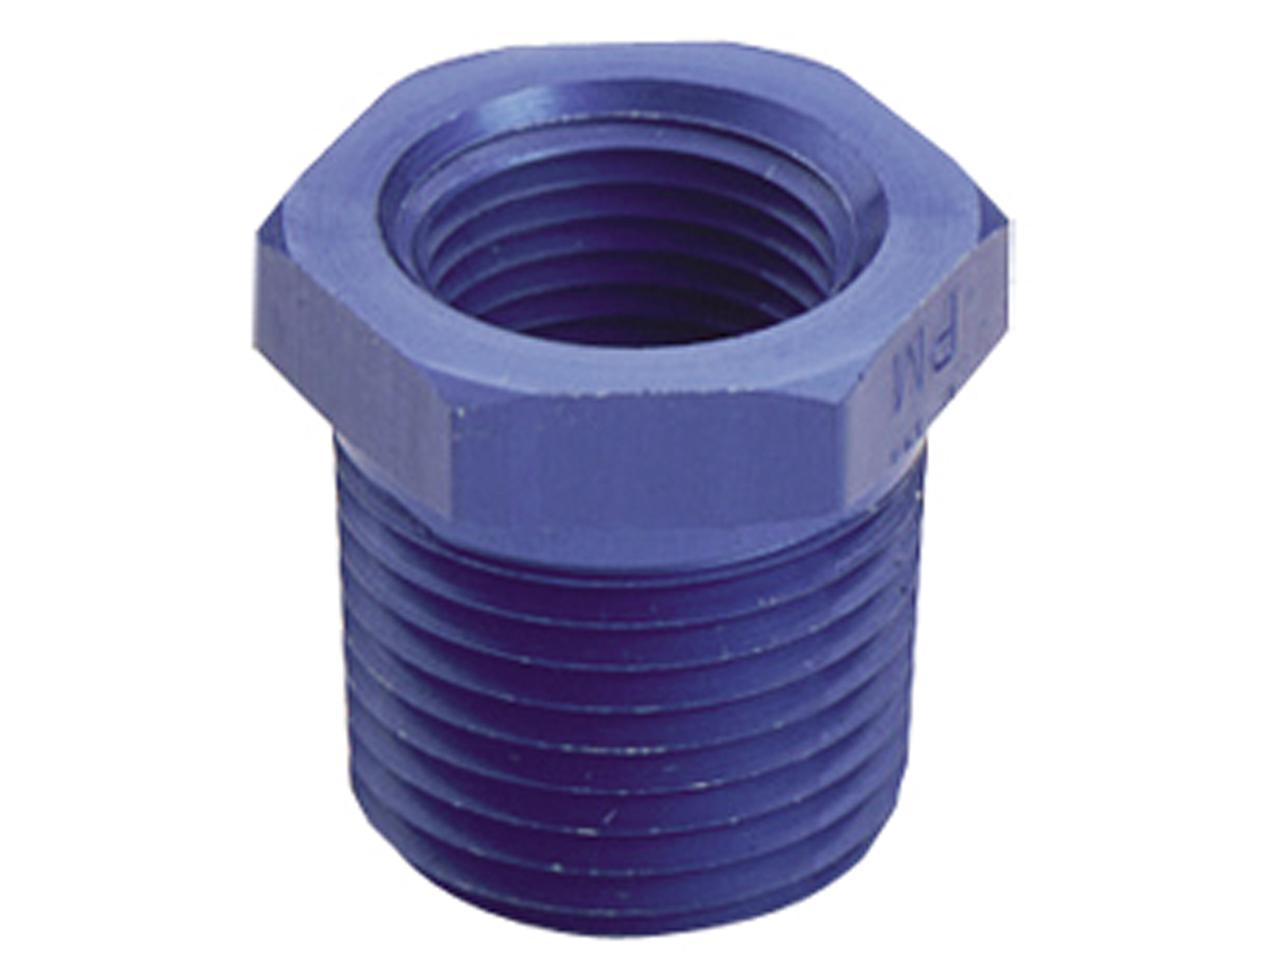 Picture of Fragola Aluminum Pipe Bushing Reducer